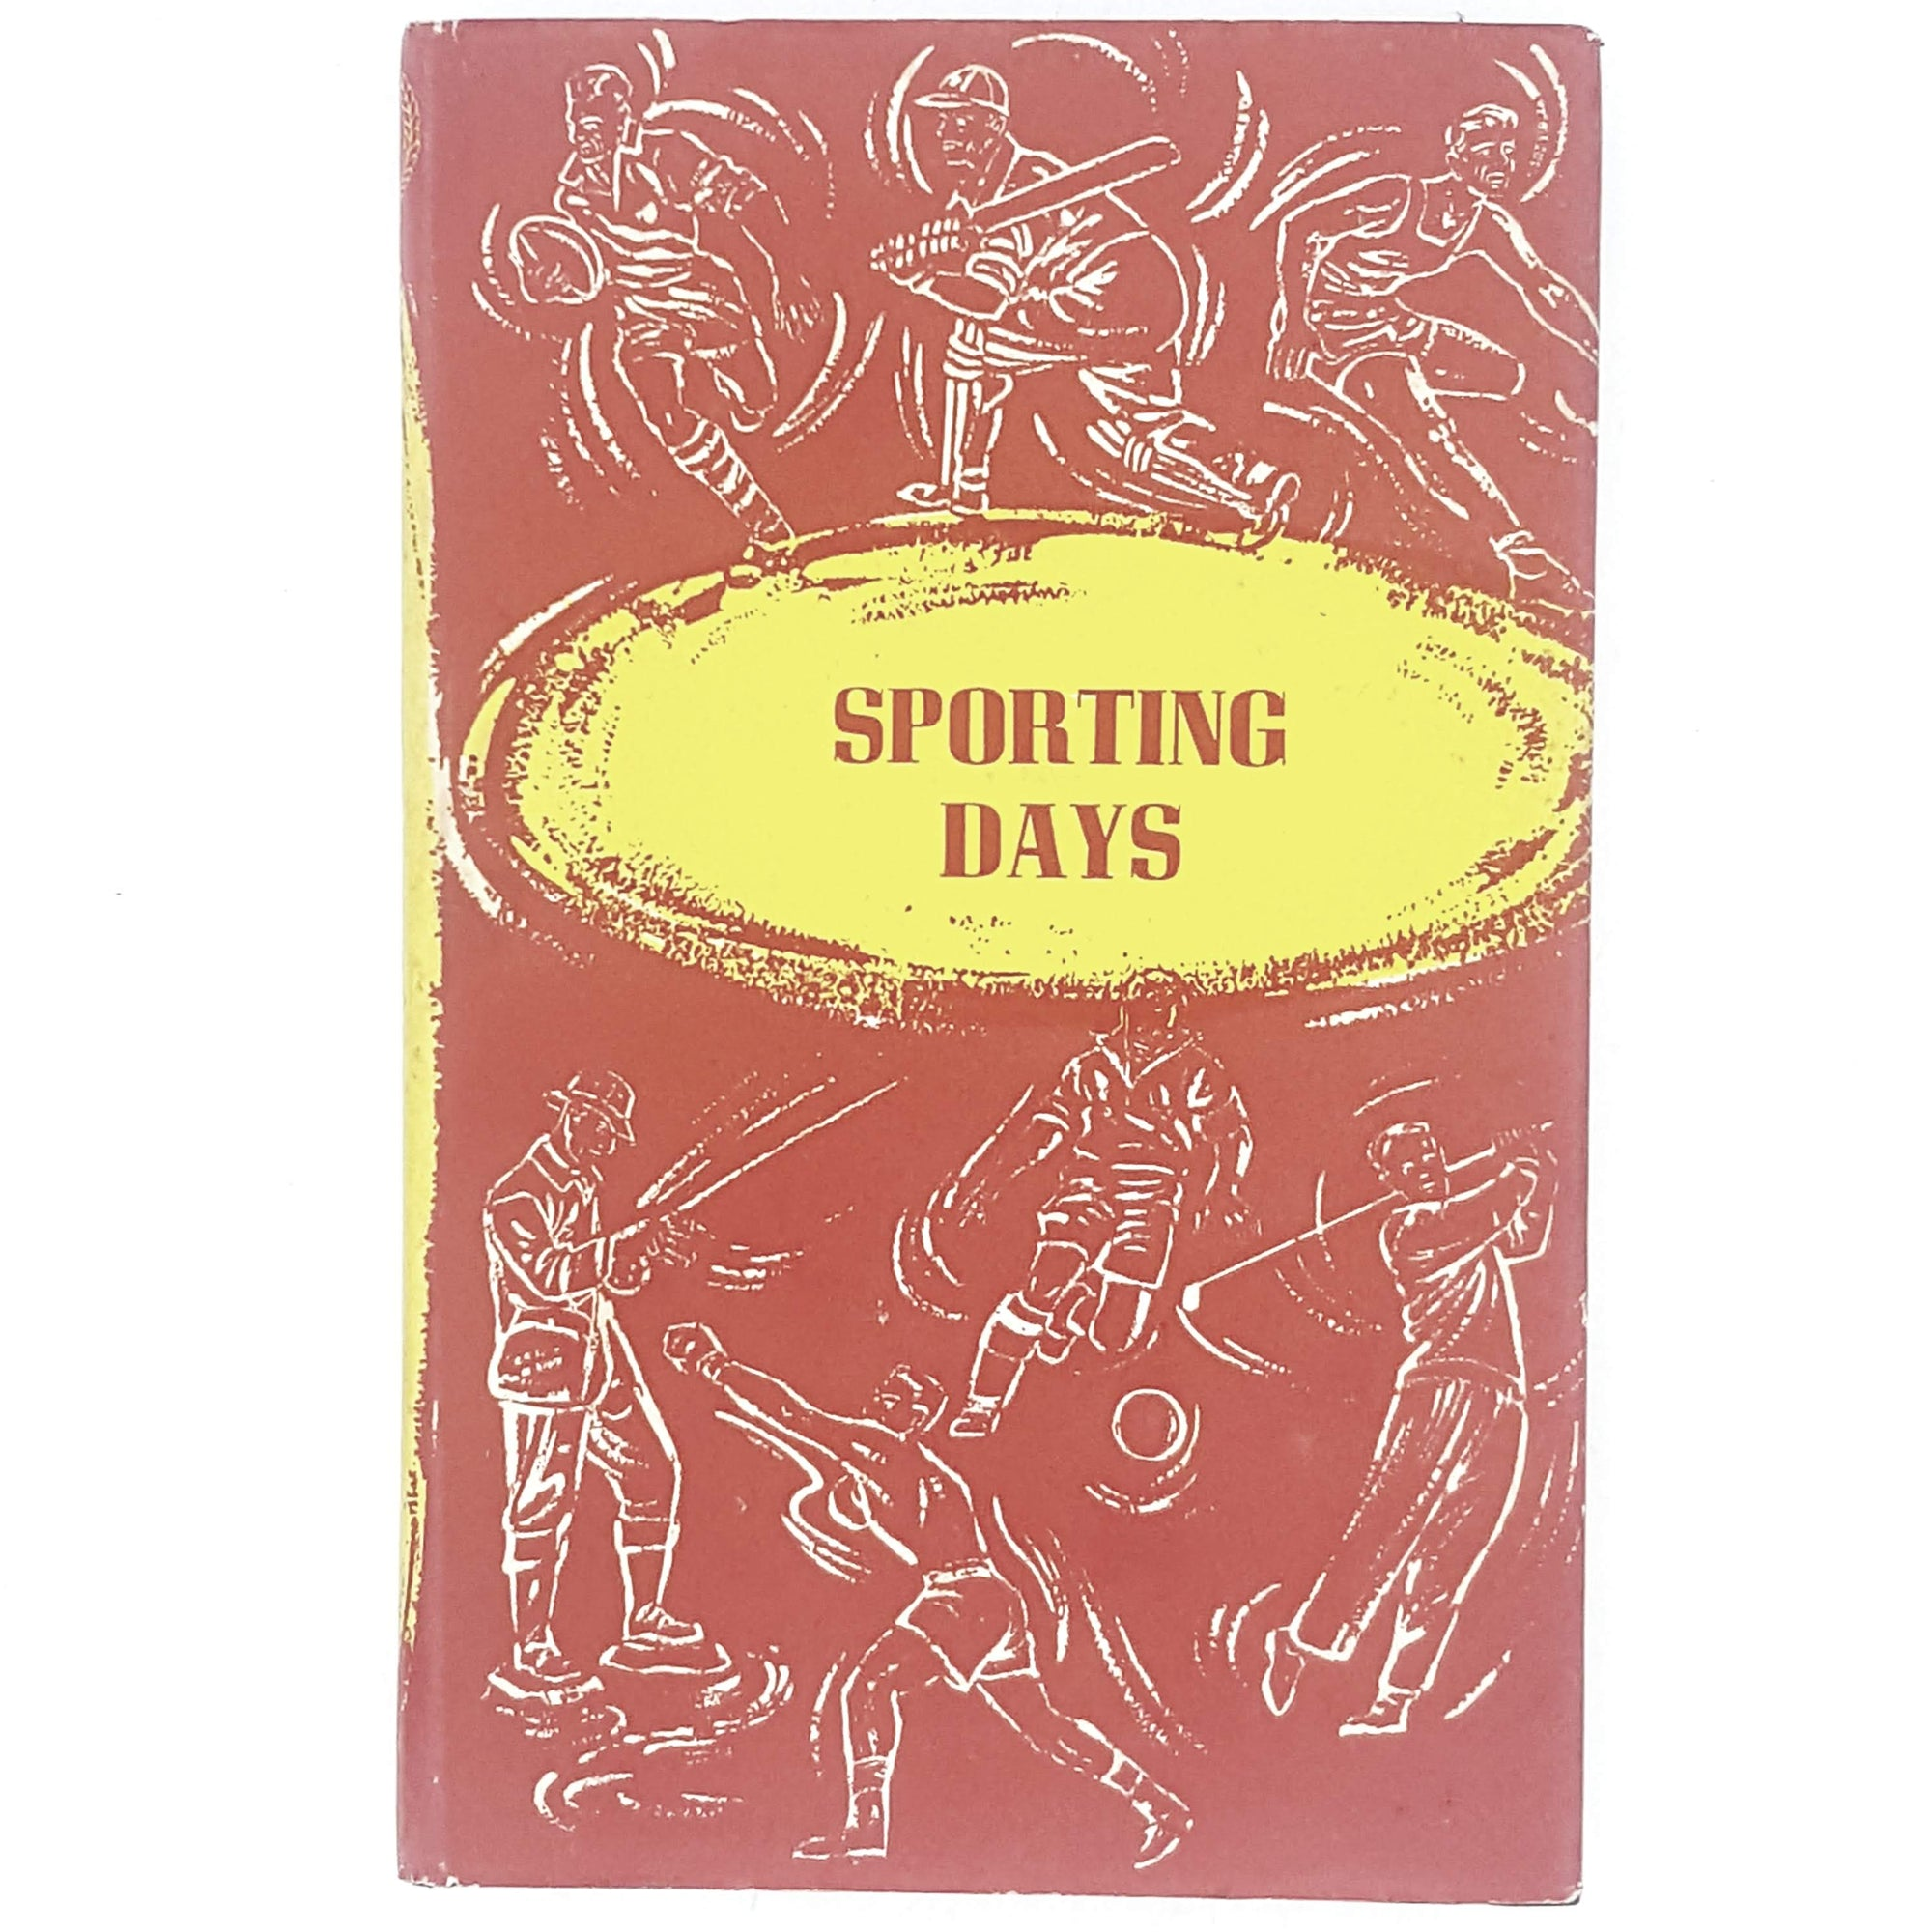 Illustrated Sporting Days 1957